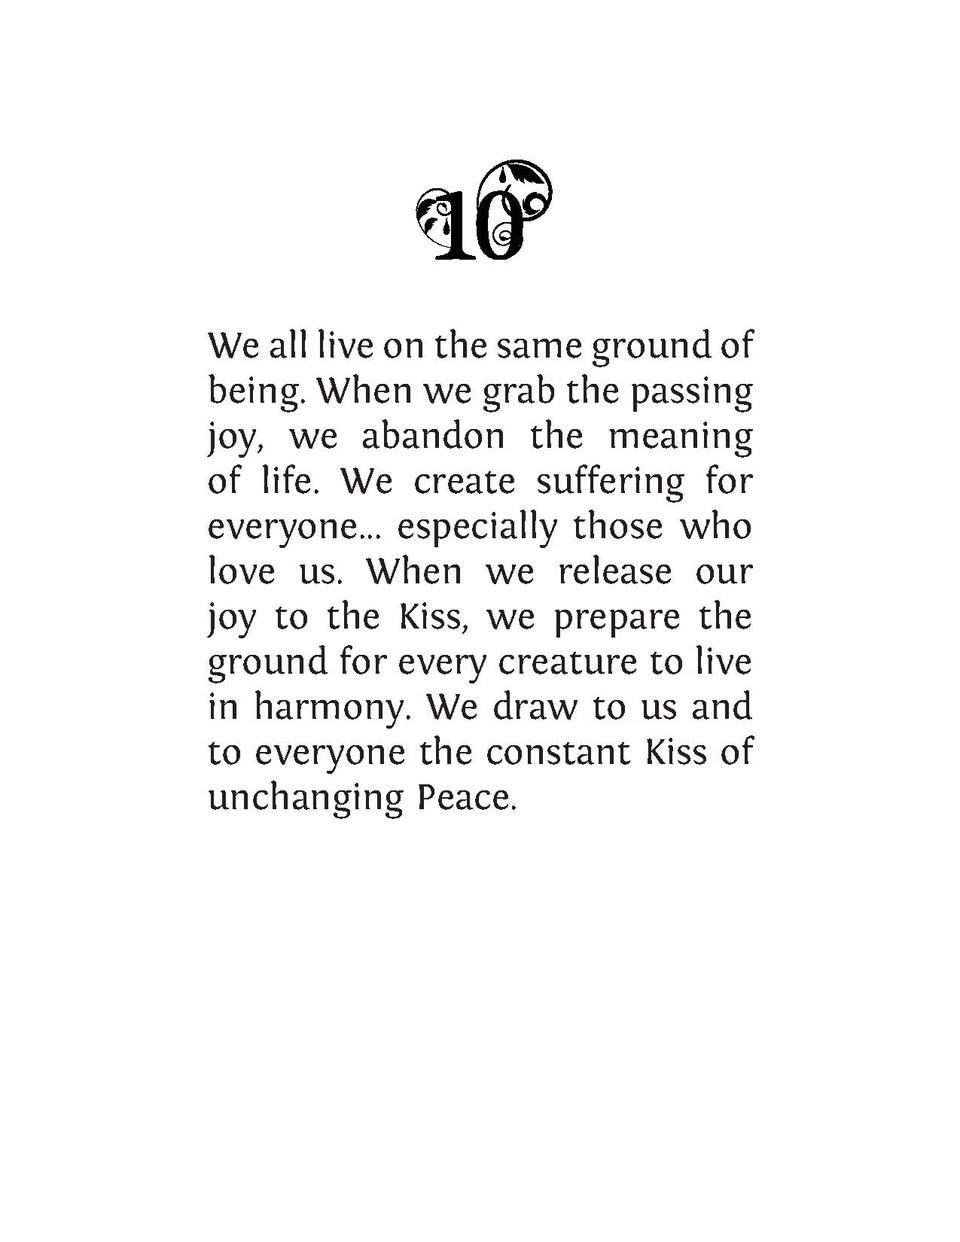 We all live on the same ground of being. When we grab the passing joy, we abandon the meaning of life. We create suffering...